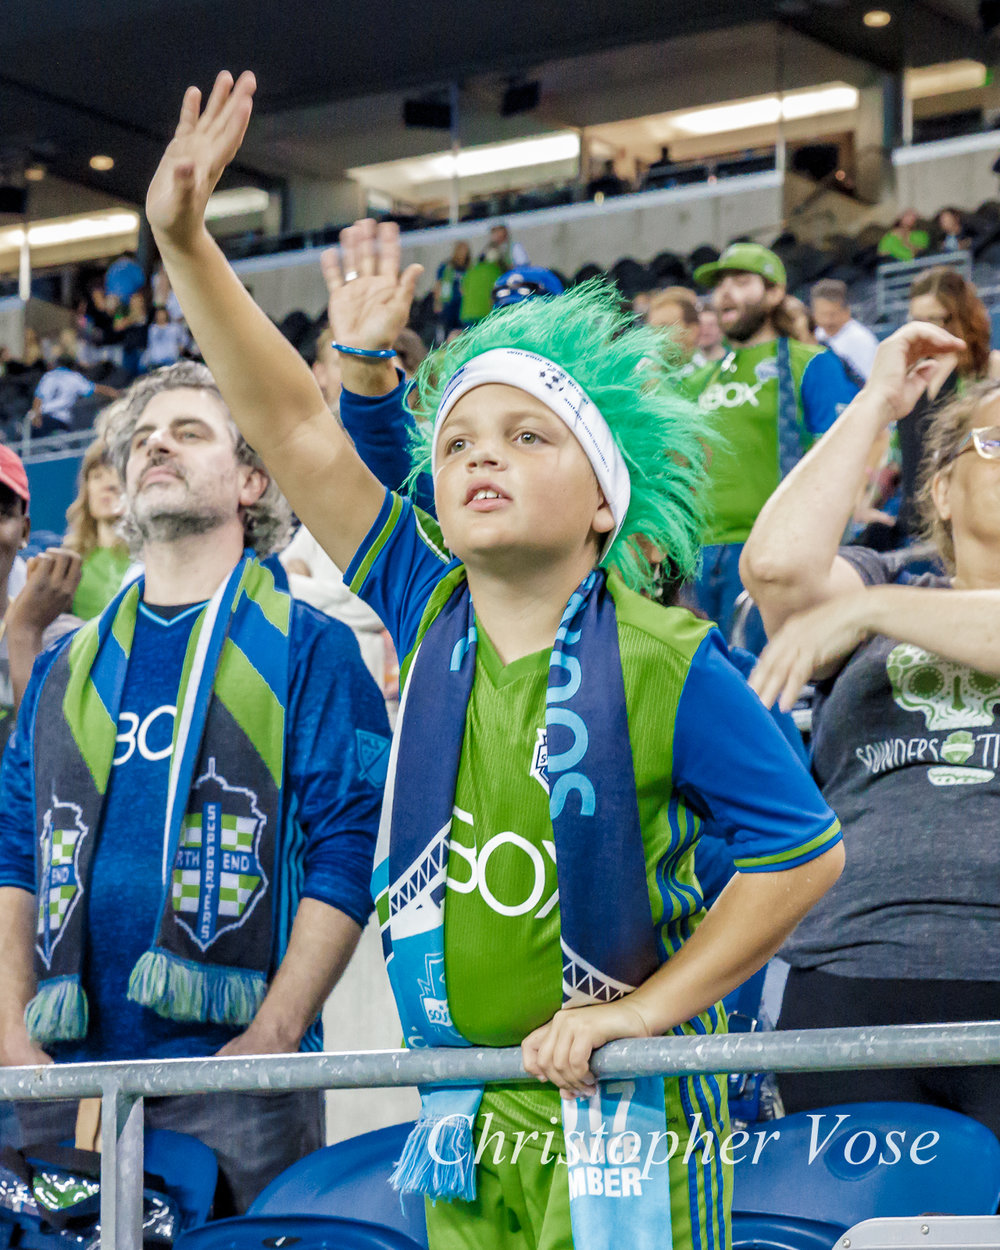 2017-09-27 Emerald City Supporter 2.jpg